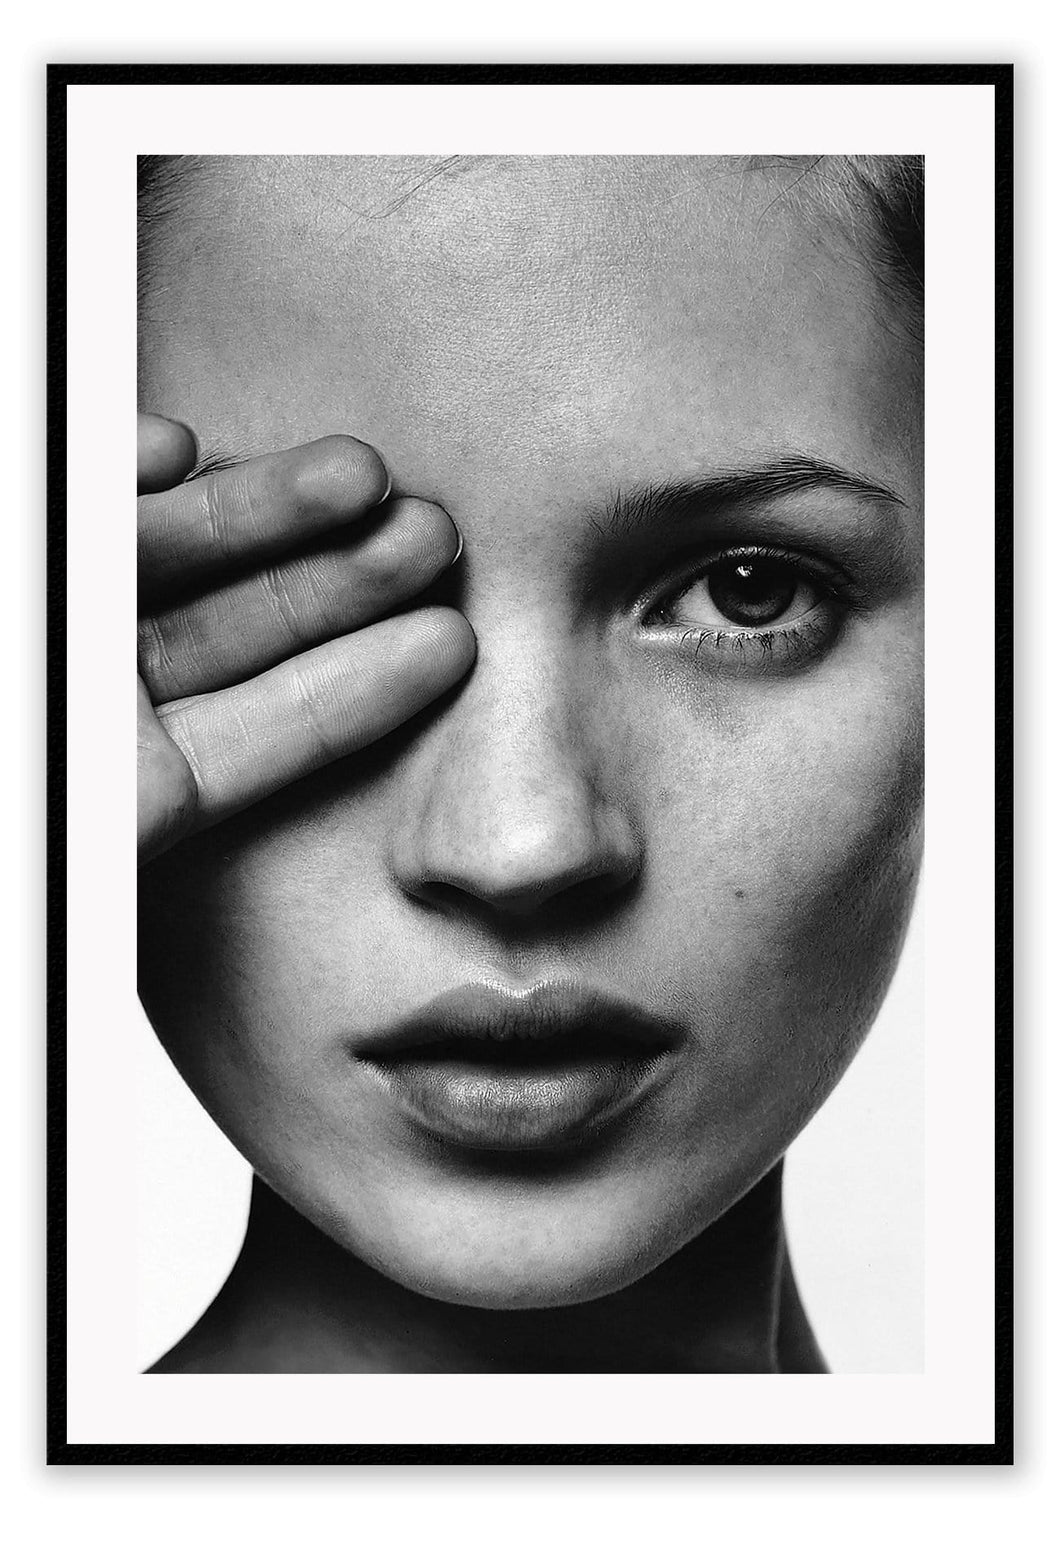 Kate Moss B&W - italianluxurygroup.com.au